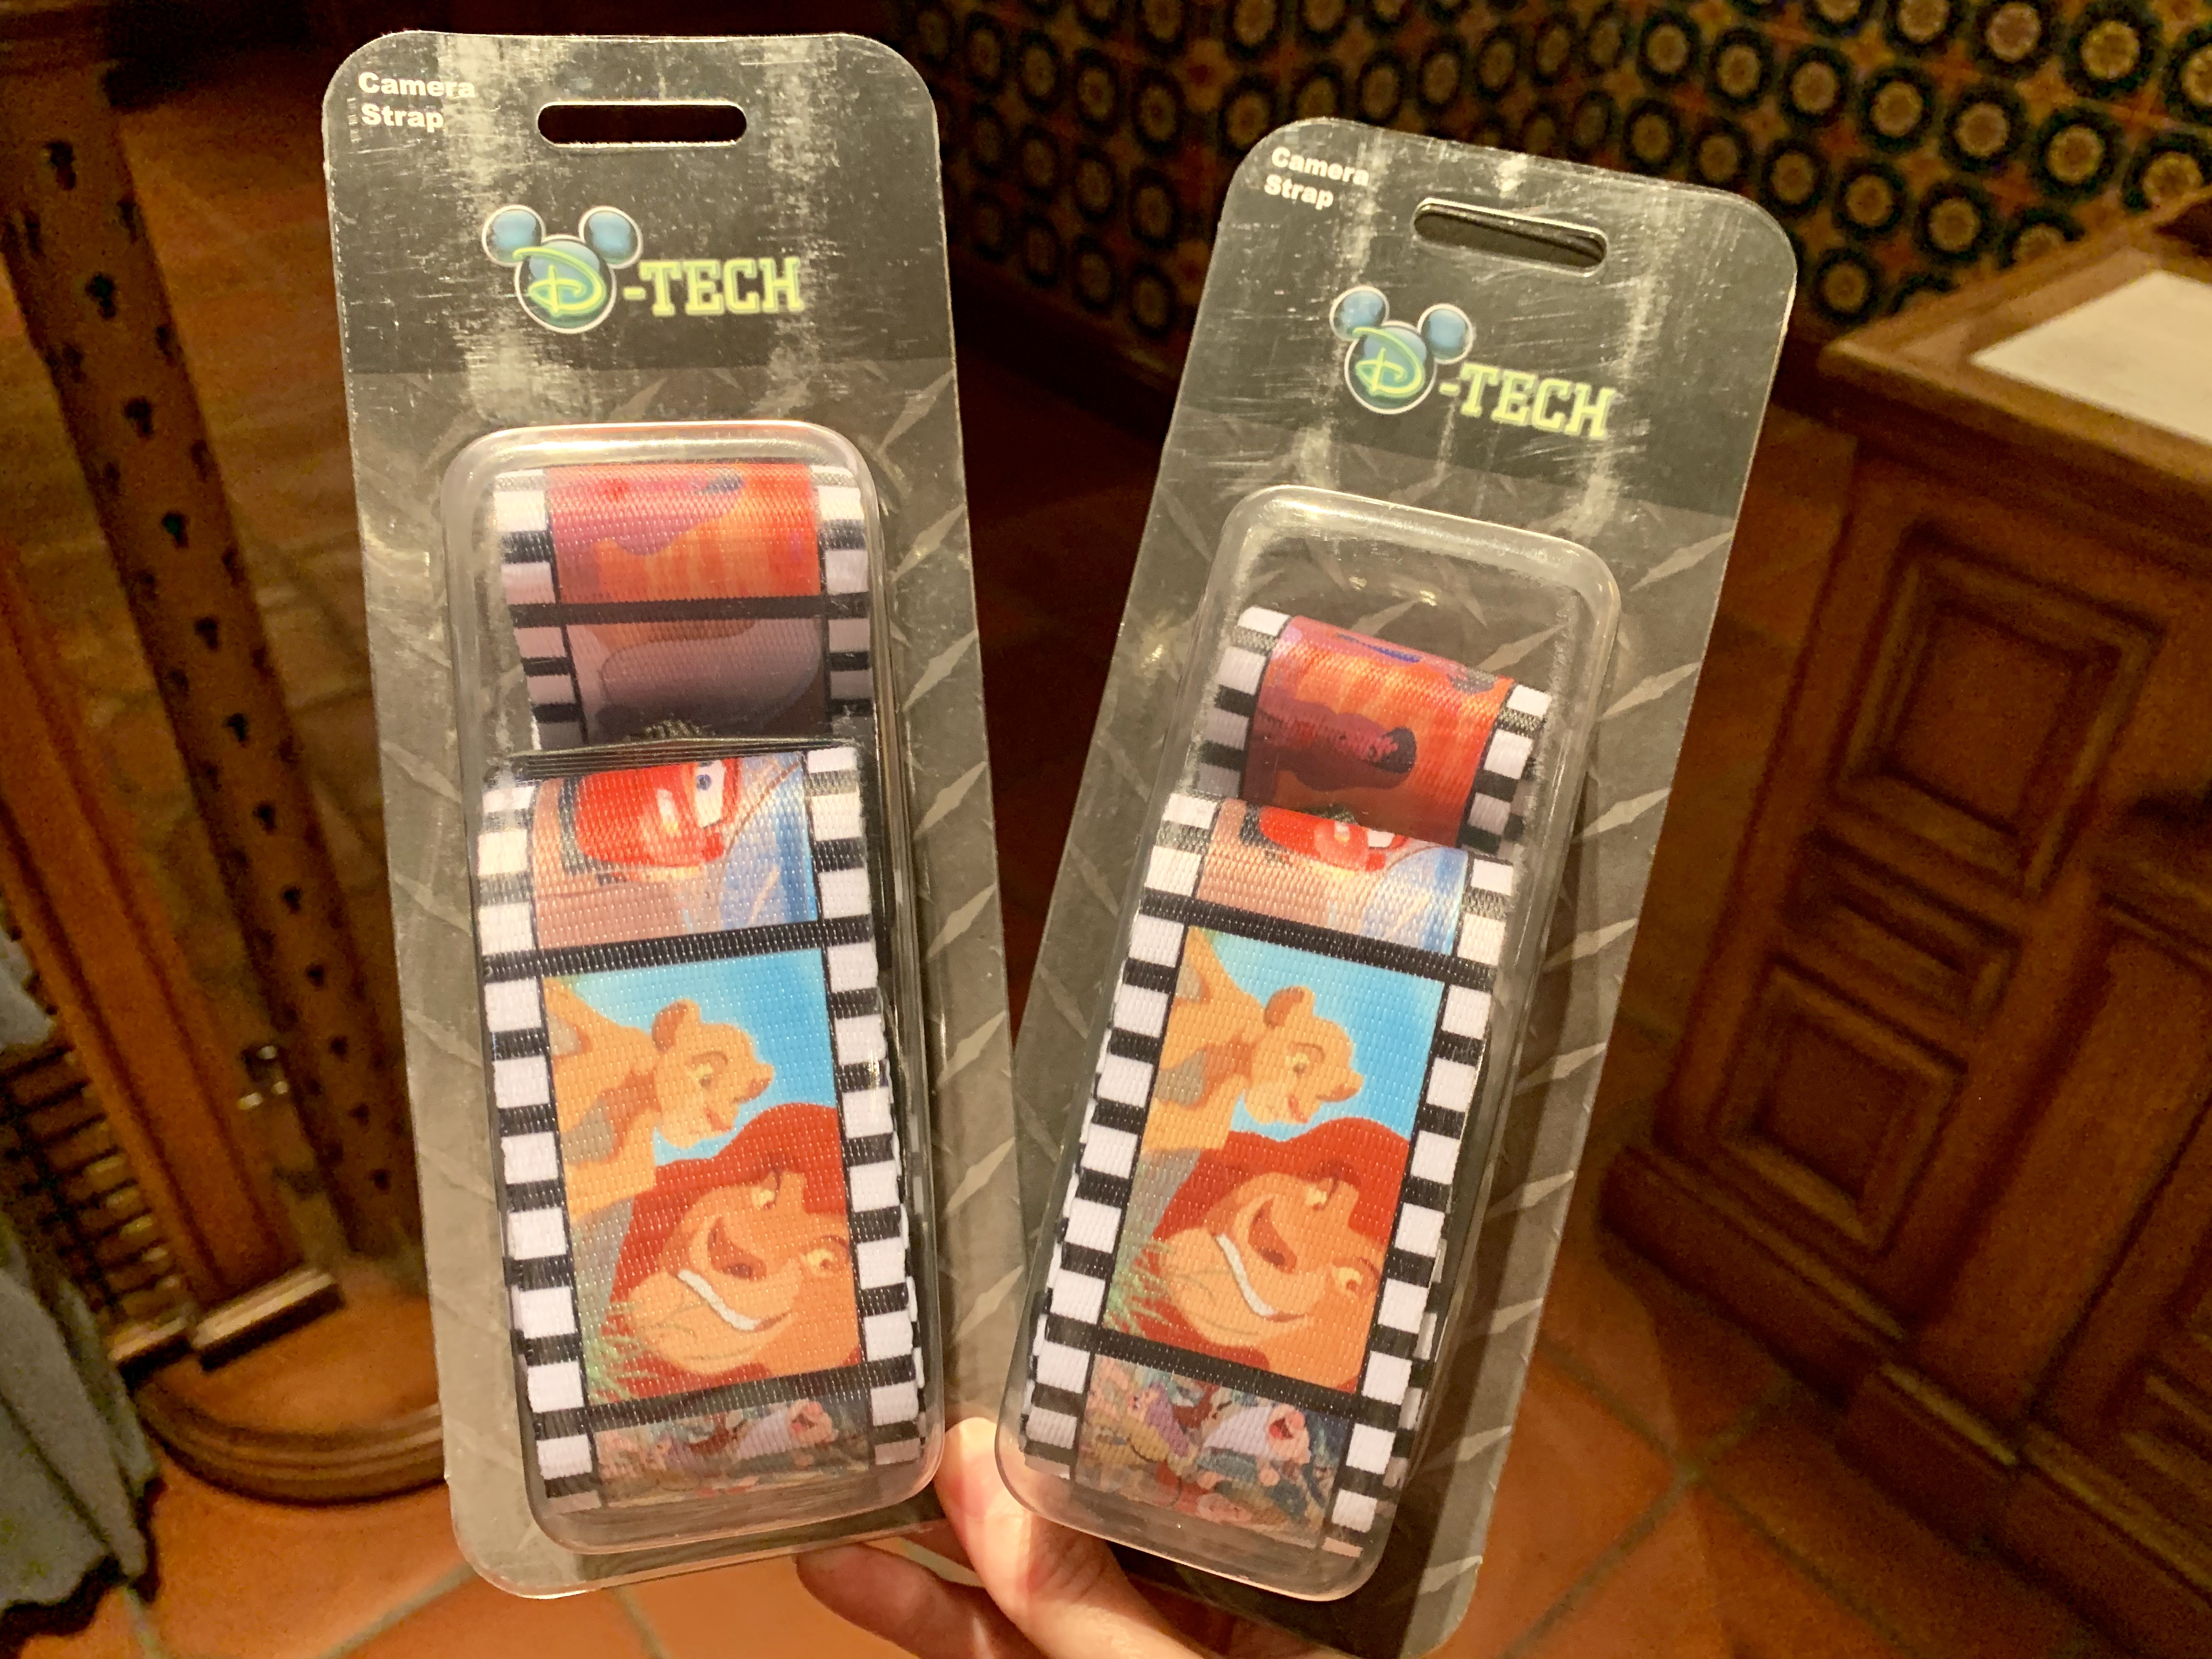 D-Tech Camera Strap Featuring Scenes From Classic Animated Films Disney California Adventure